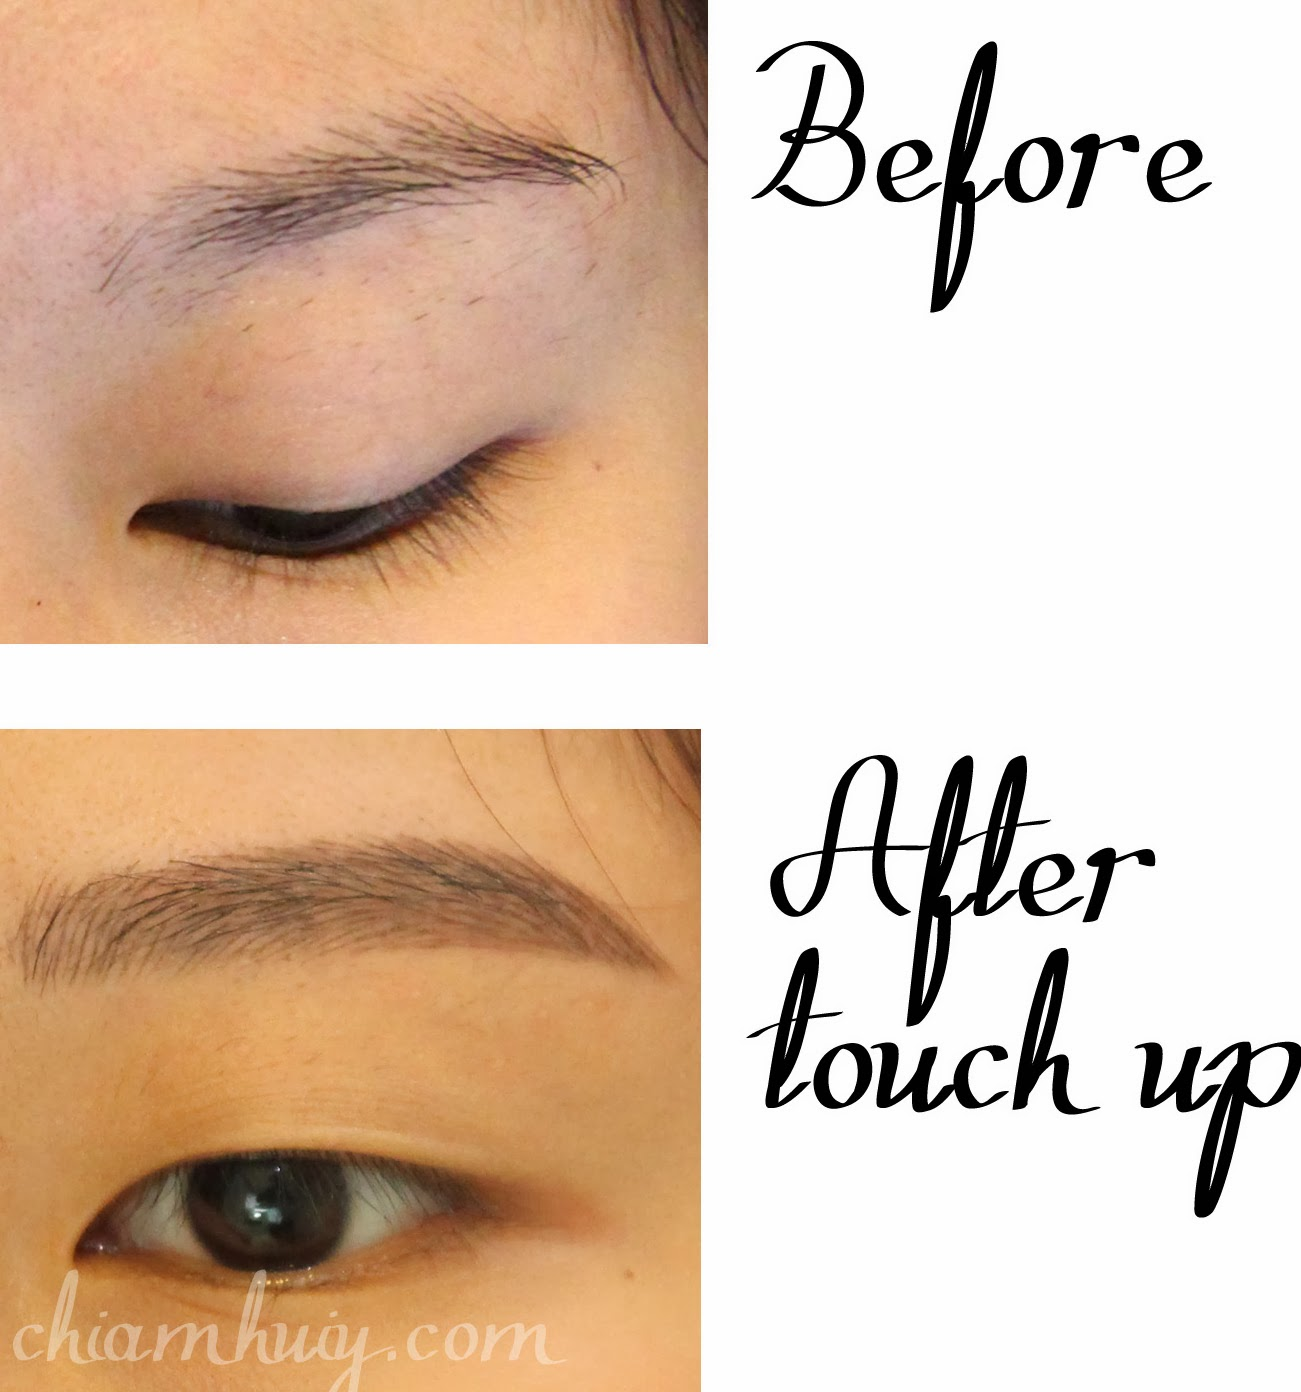 Eyebrow Embroidery (New Technique) in Singapore - HighBrow @ Star ...